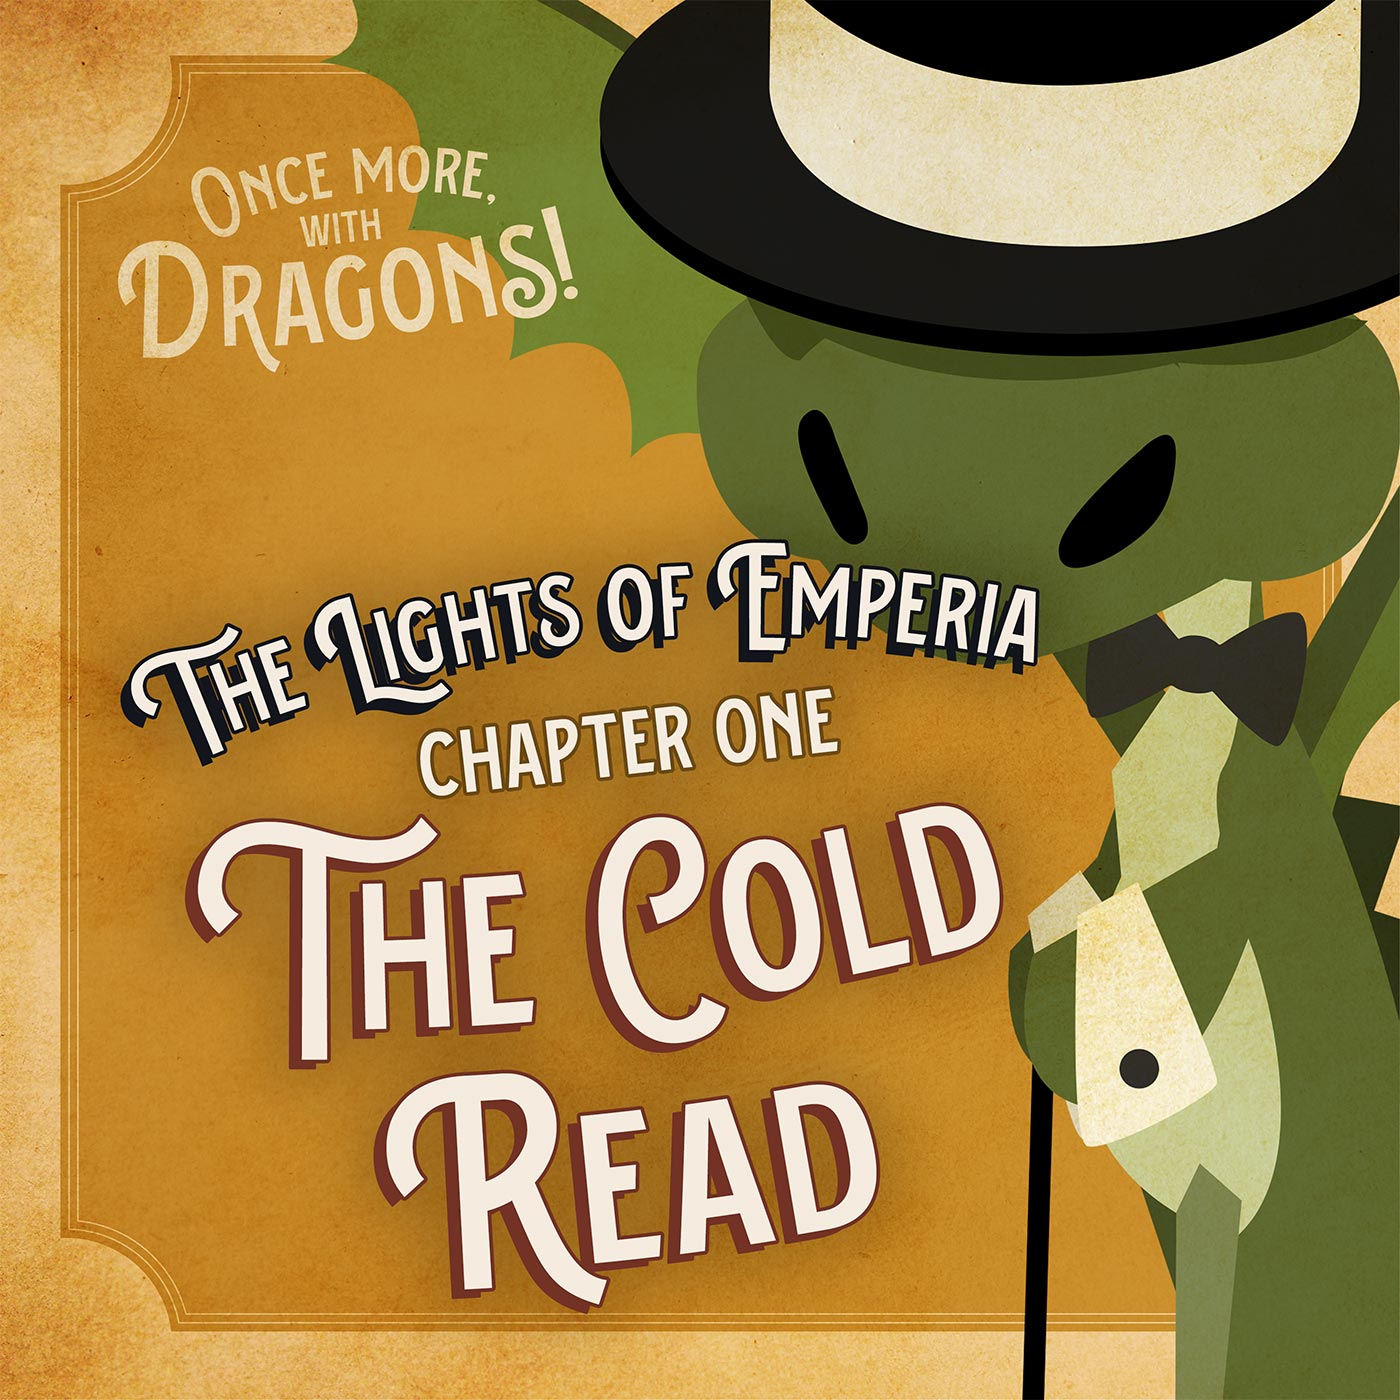 Once More With Dragons Episode 1 Chapter One The Lights of Emperia